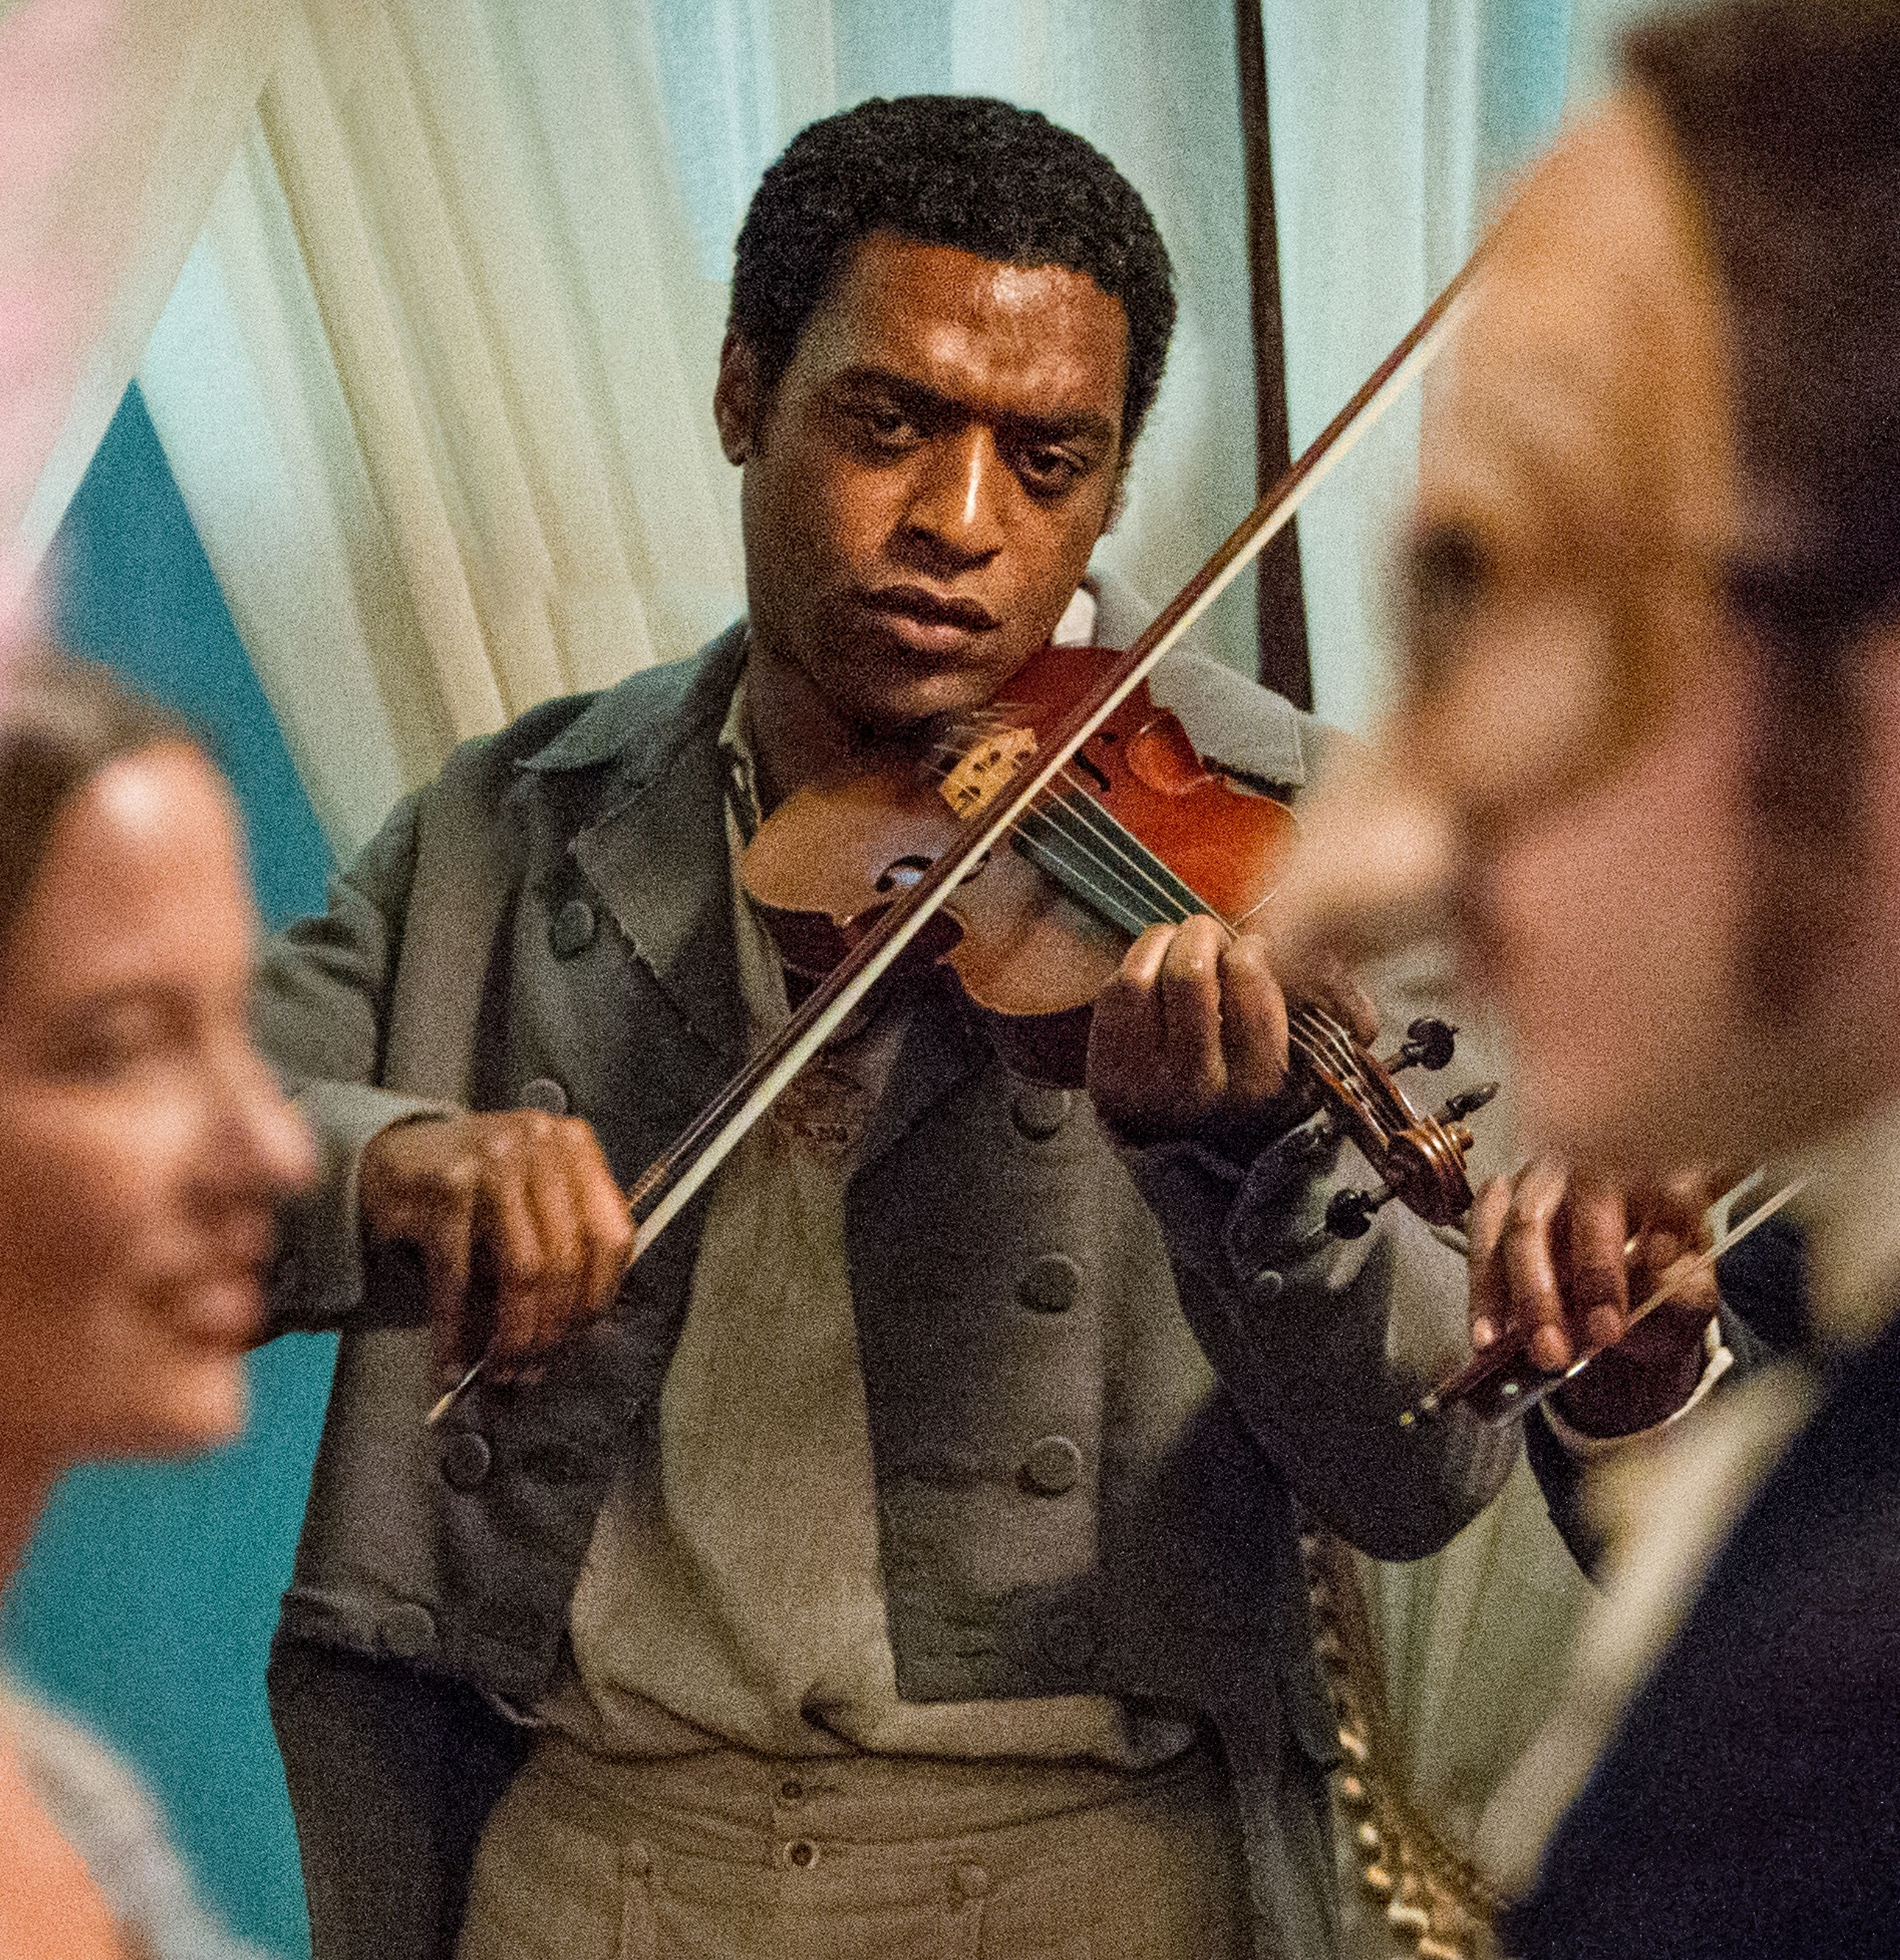 Solomon Northup playing his violin